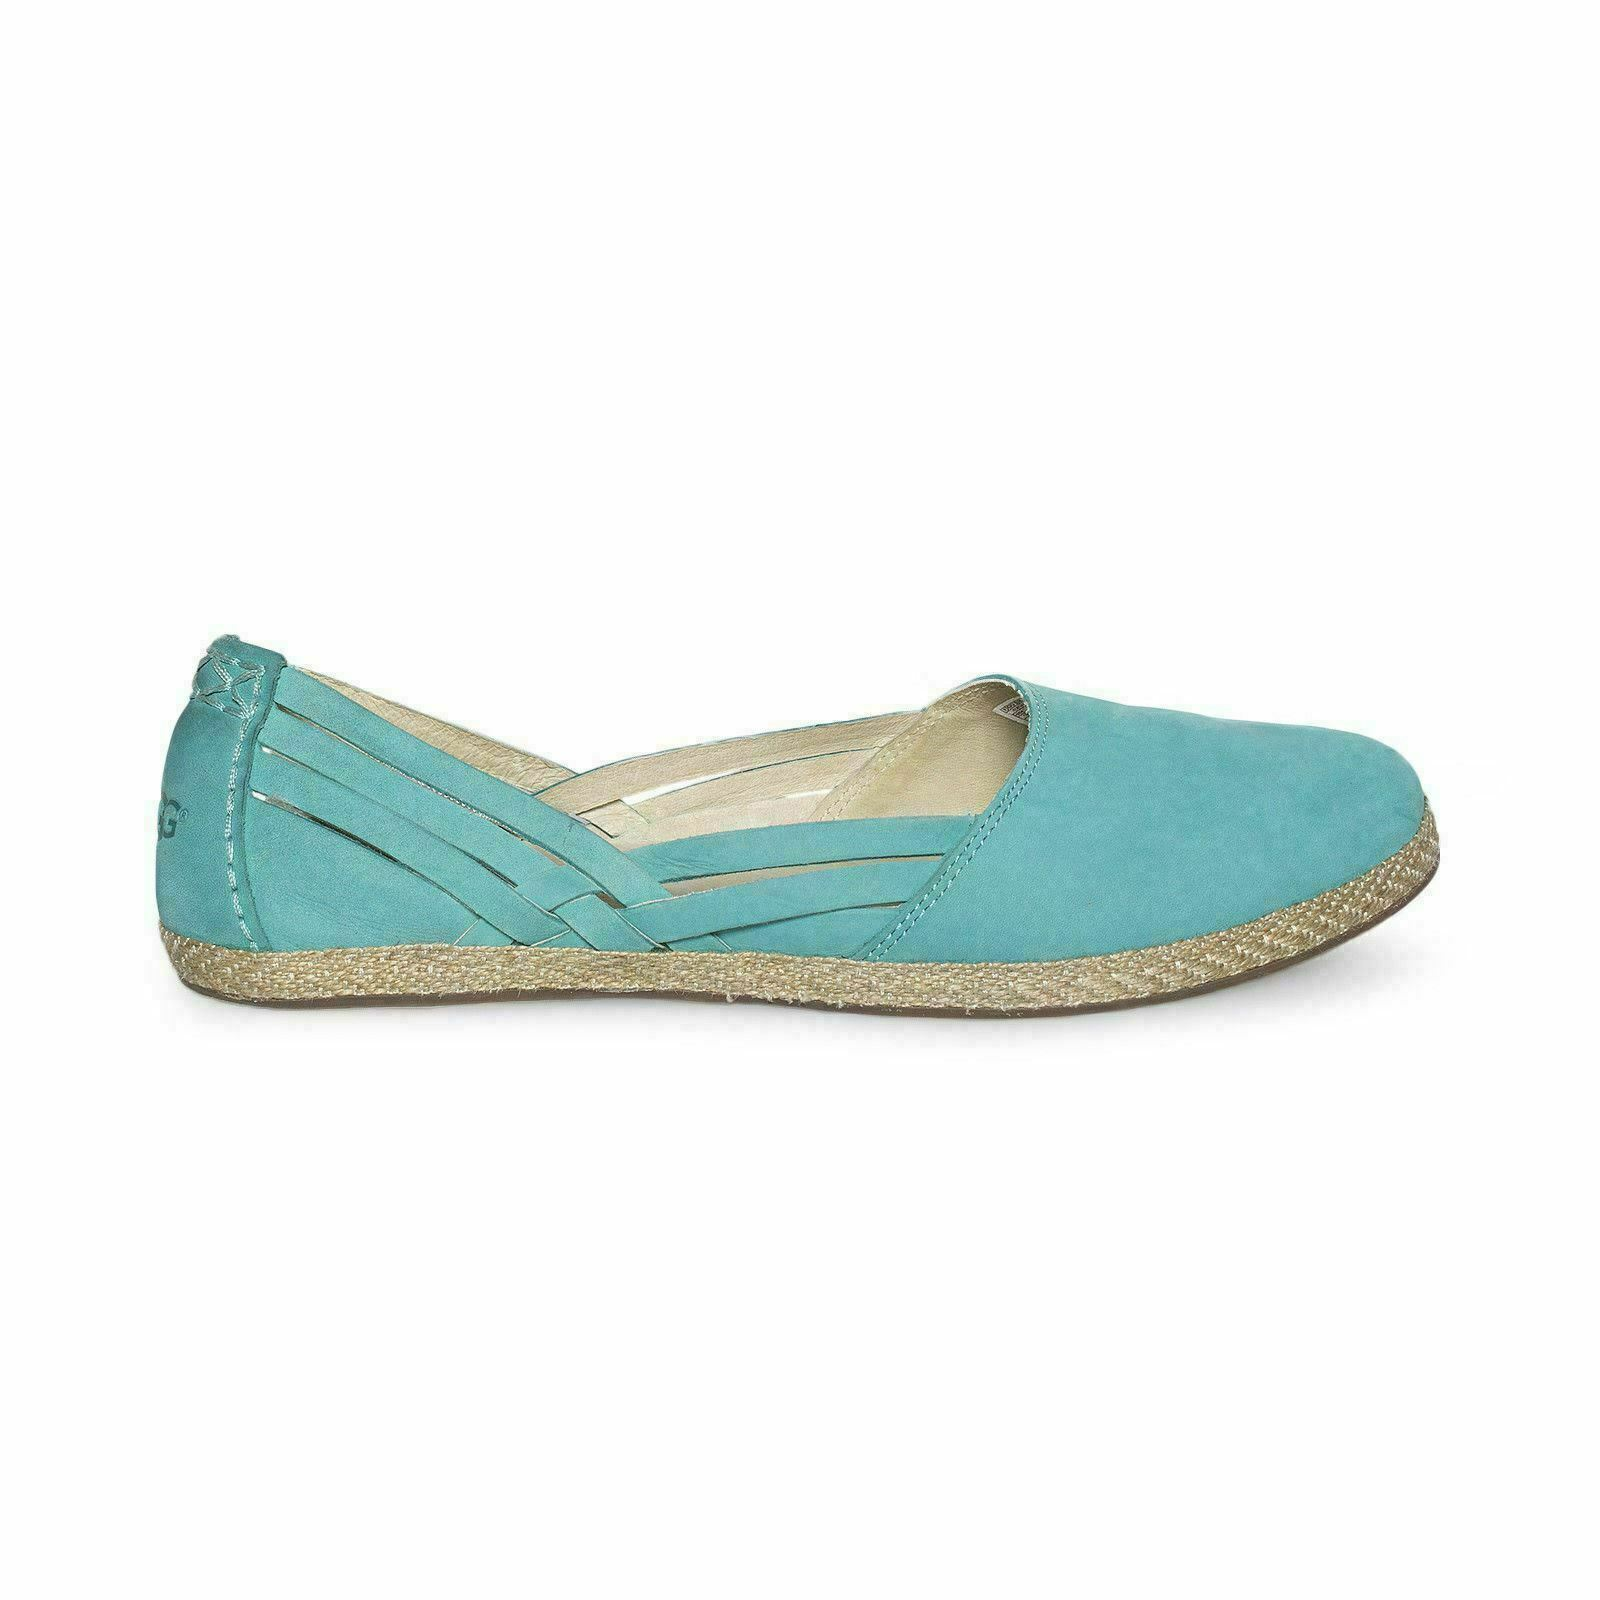 5fa5695f0e3 UGG Tippie Acapulco Leather Slip on Ballet Flat Womens Shoes Size US 10